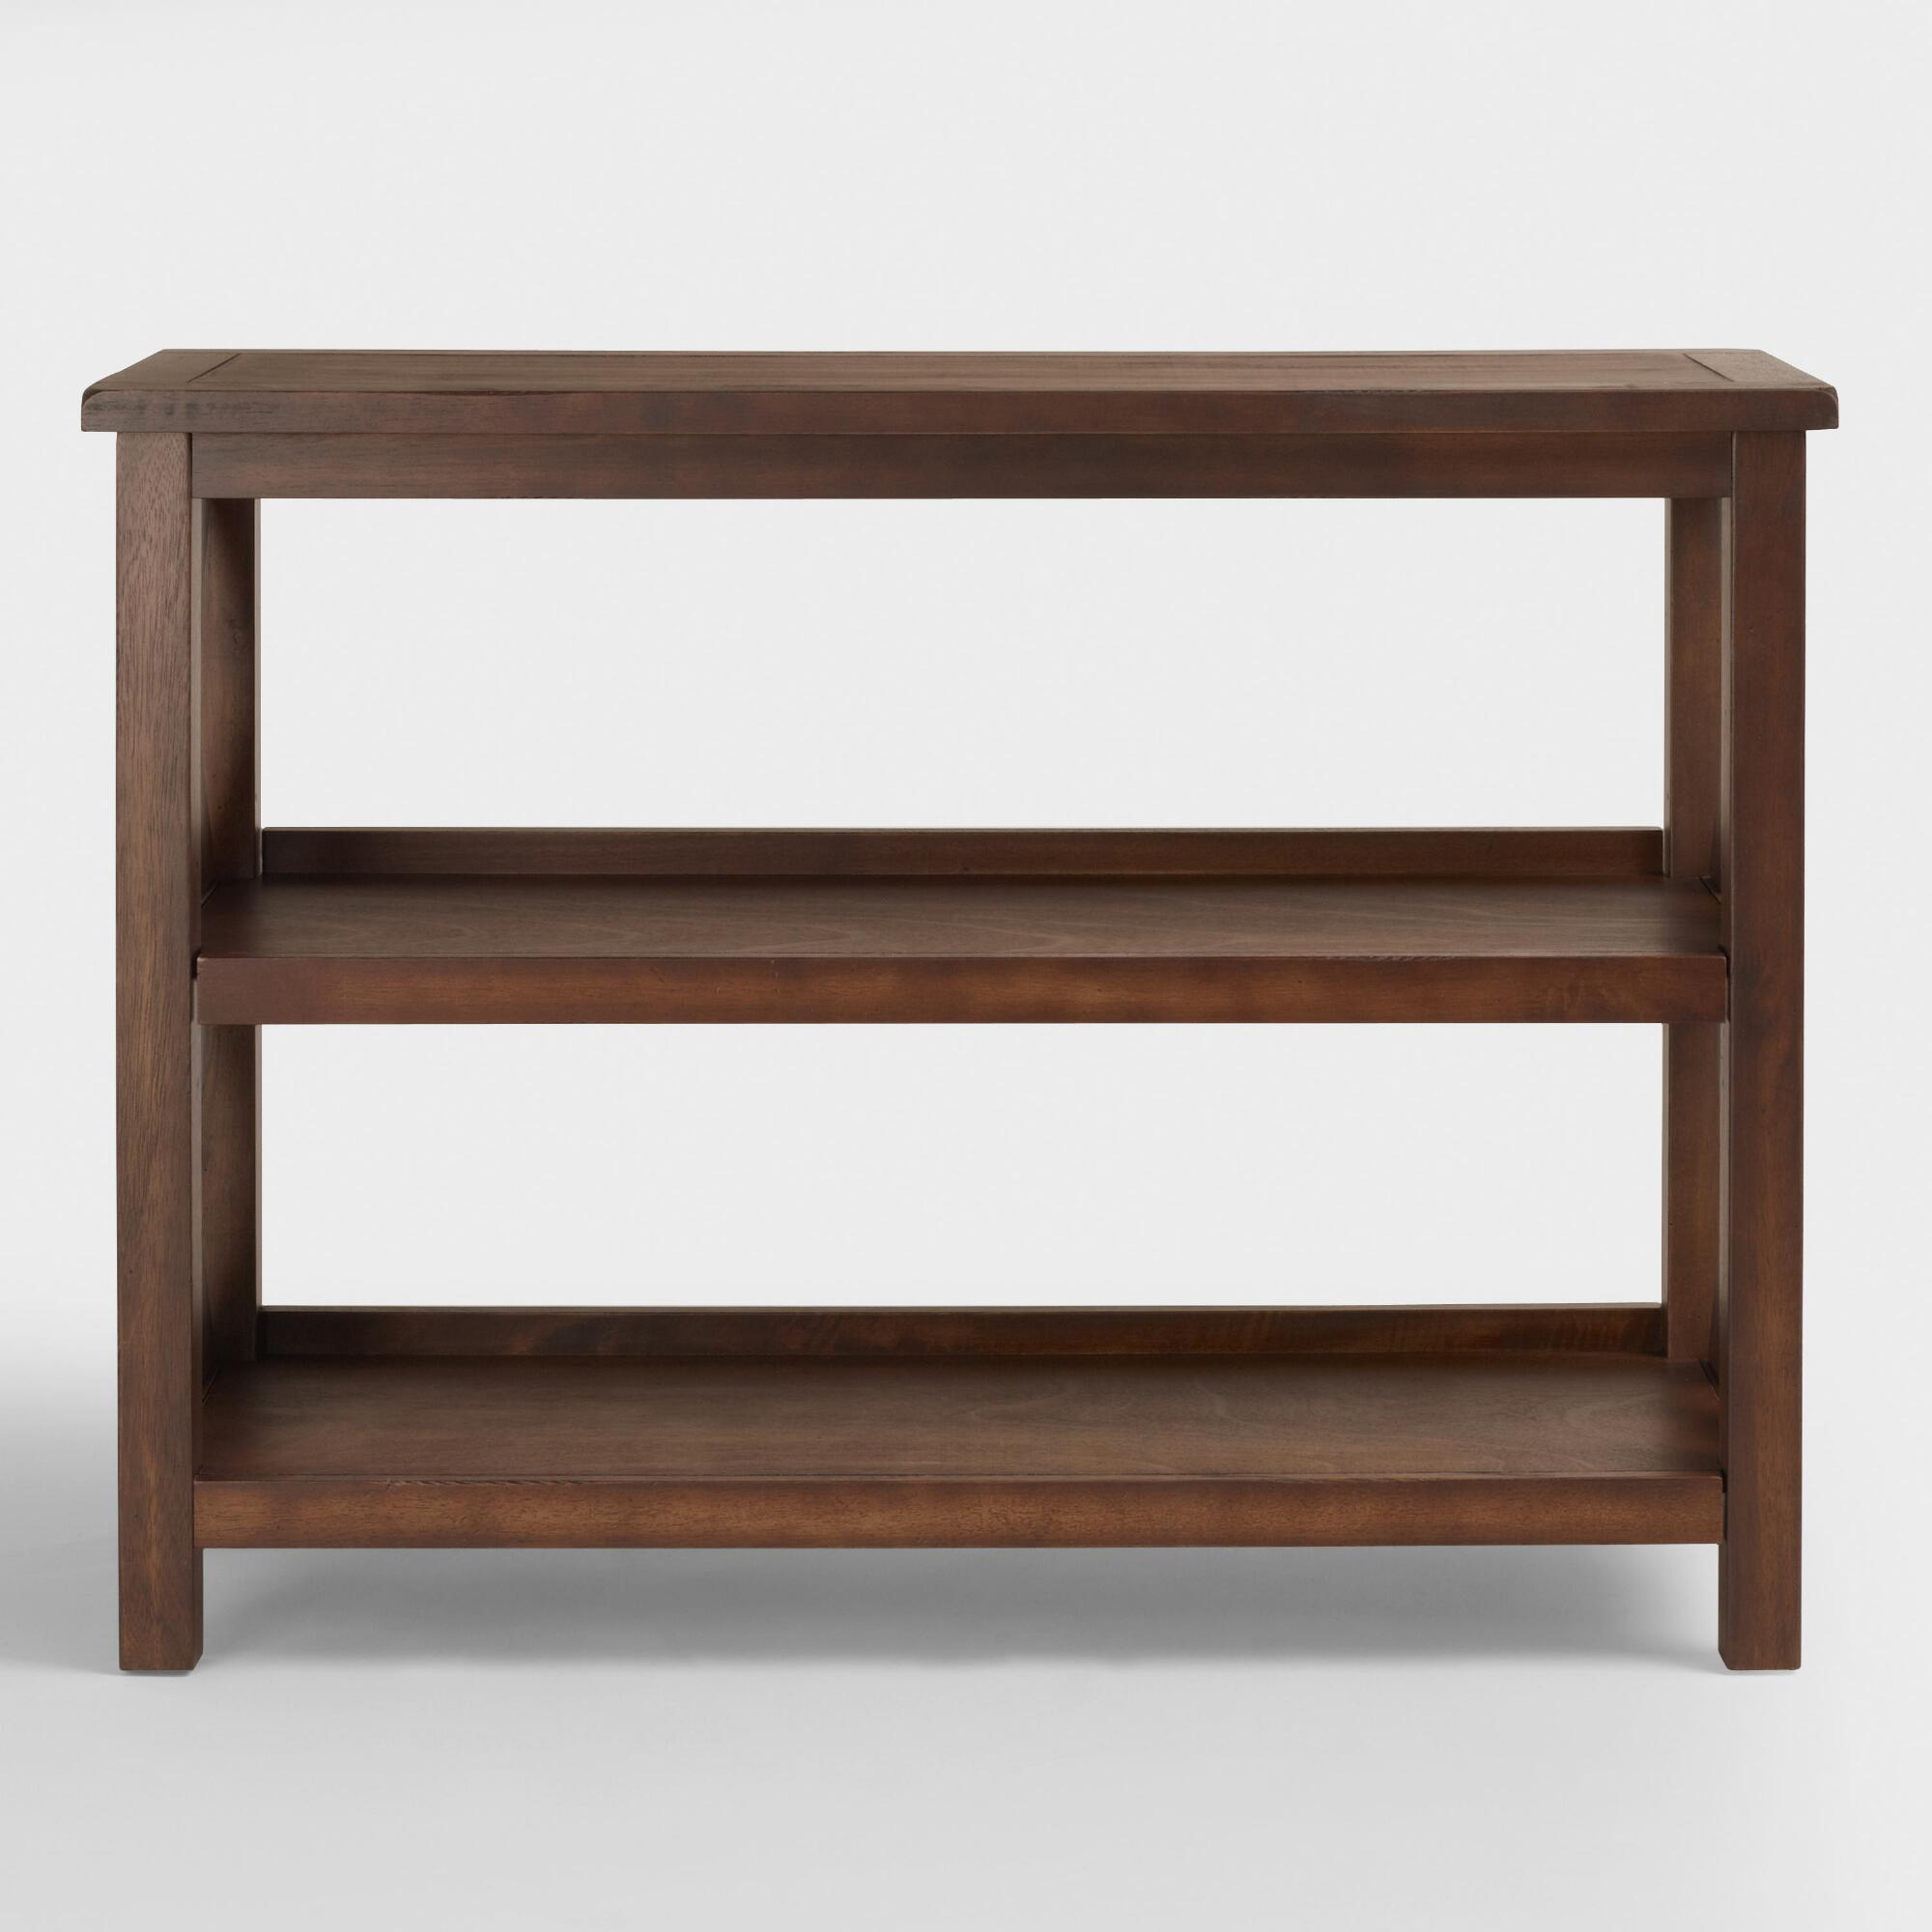 container exceptional childrens striking vertical of imposing size for in stunning sling cadman uncategorized alarming image c with glamorous uncommon built west elm plans spine designer uk and sa store sapiens ideal additional full bookcase bookshelf notable